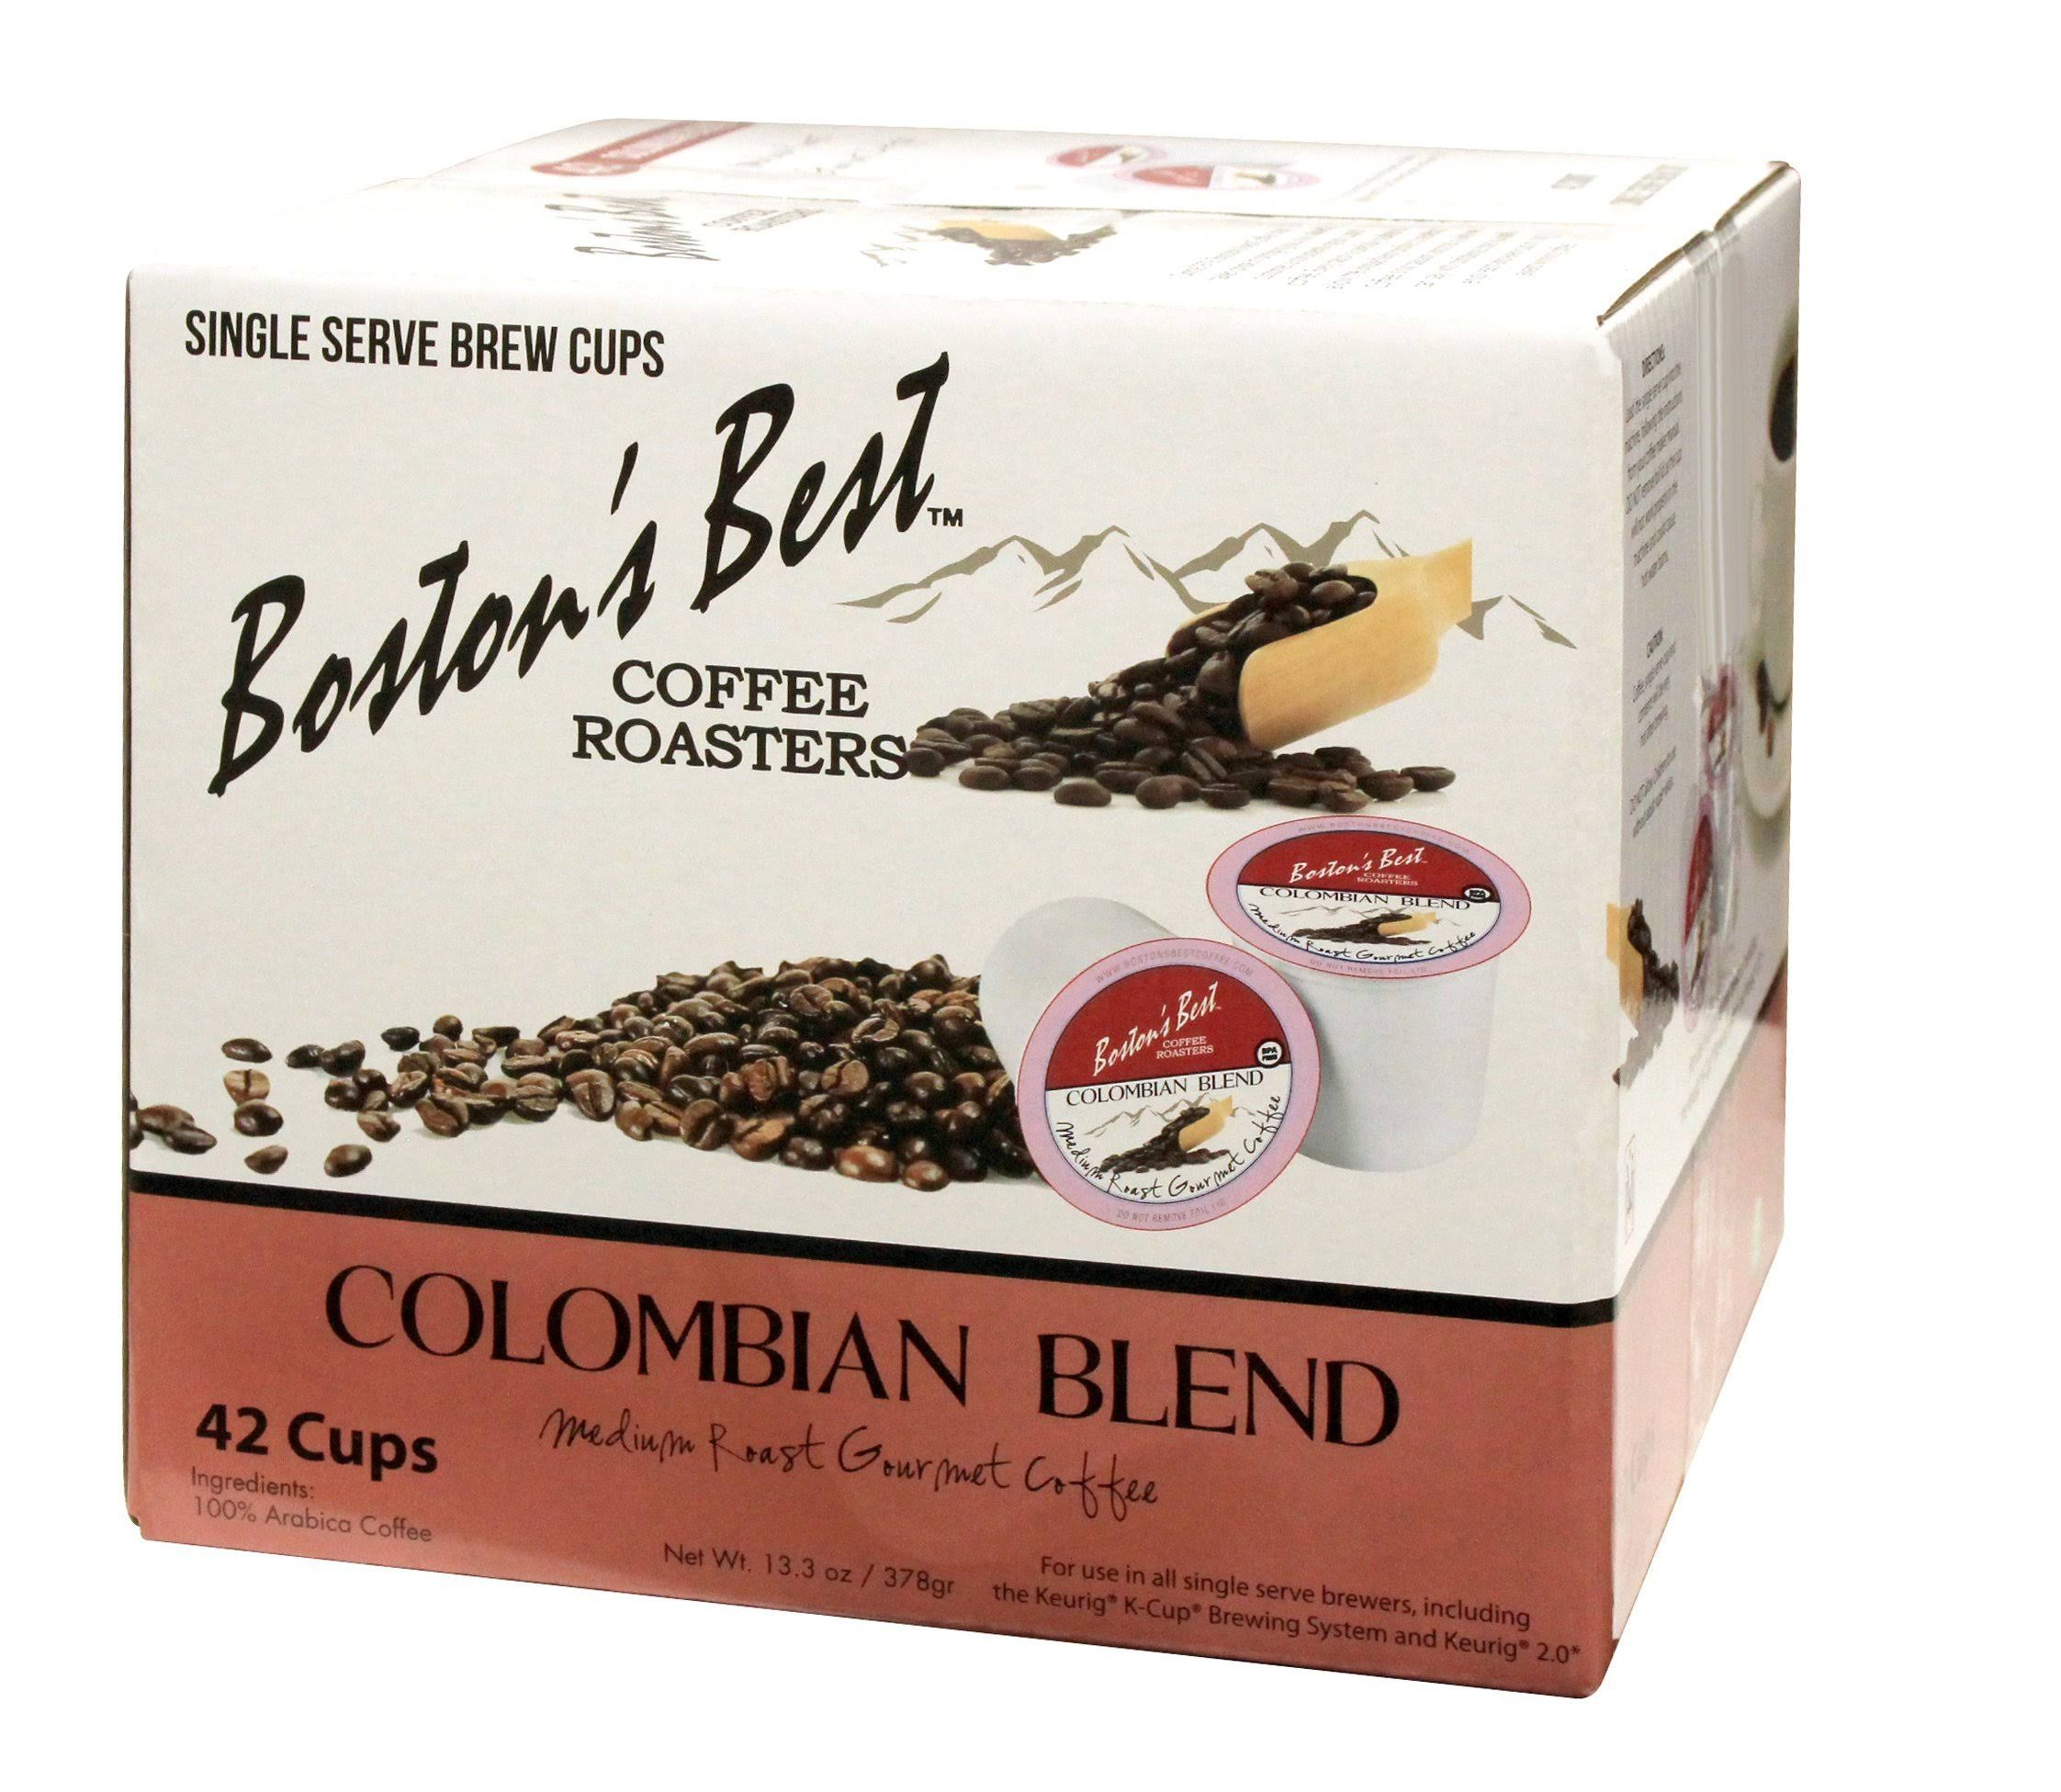 Boston's Best Colombian Blend Coffee, Single Serve Cups, 42 ct